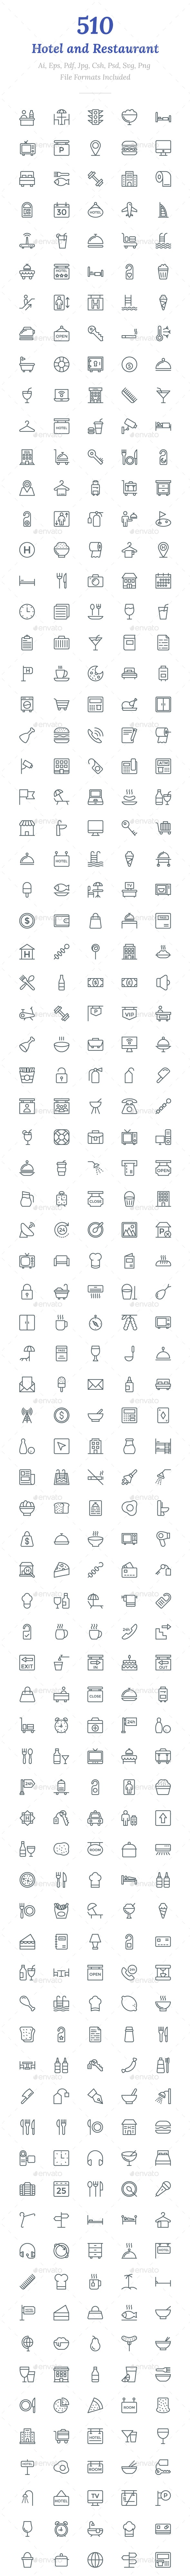 510 Hotel and Restaurant Line Icons - Icons